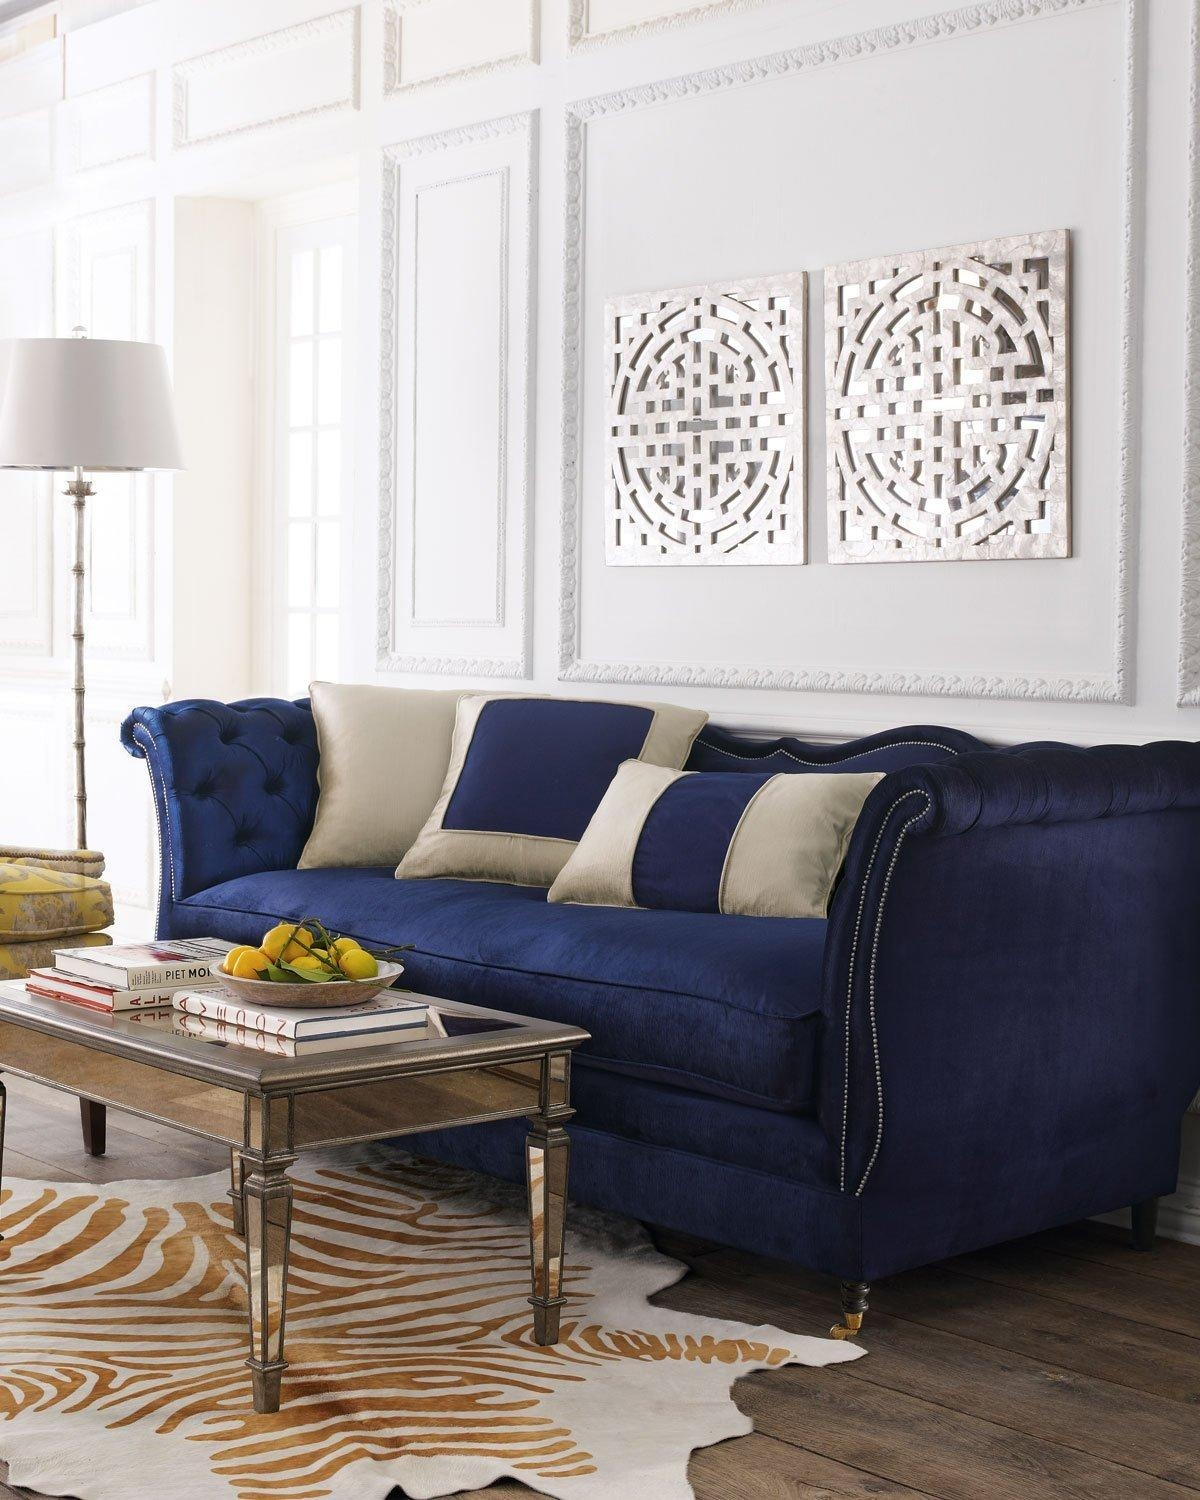 21 Different Style To Decorate Home With Blue Velvet Sofa inside Blue Velvet Tufted Sofas